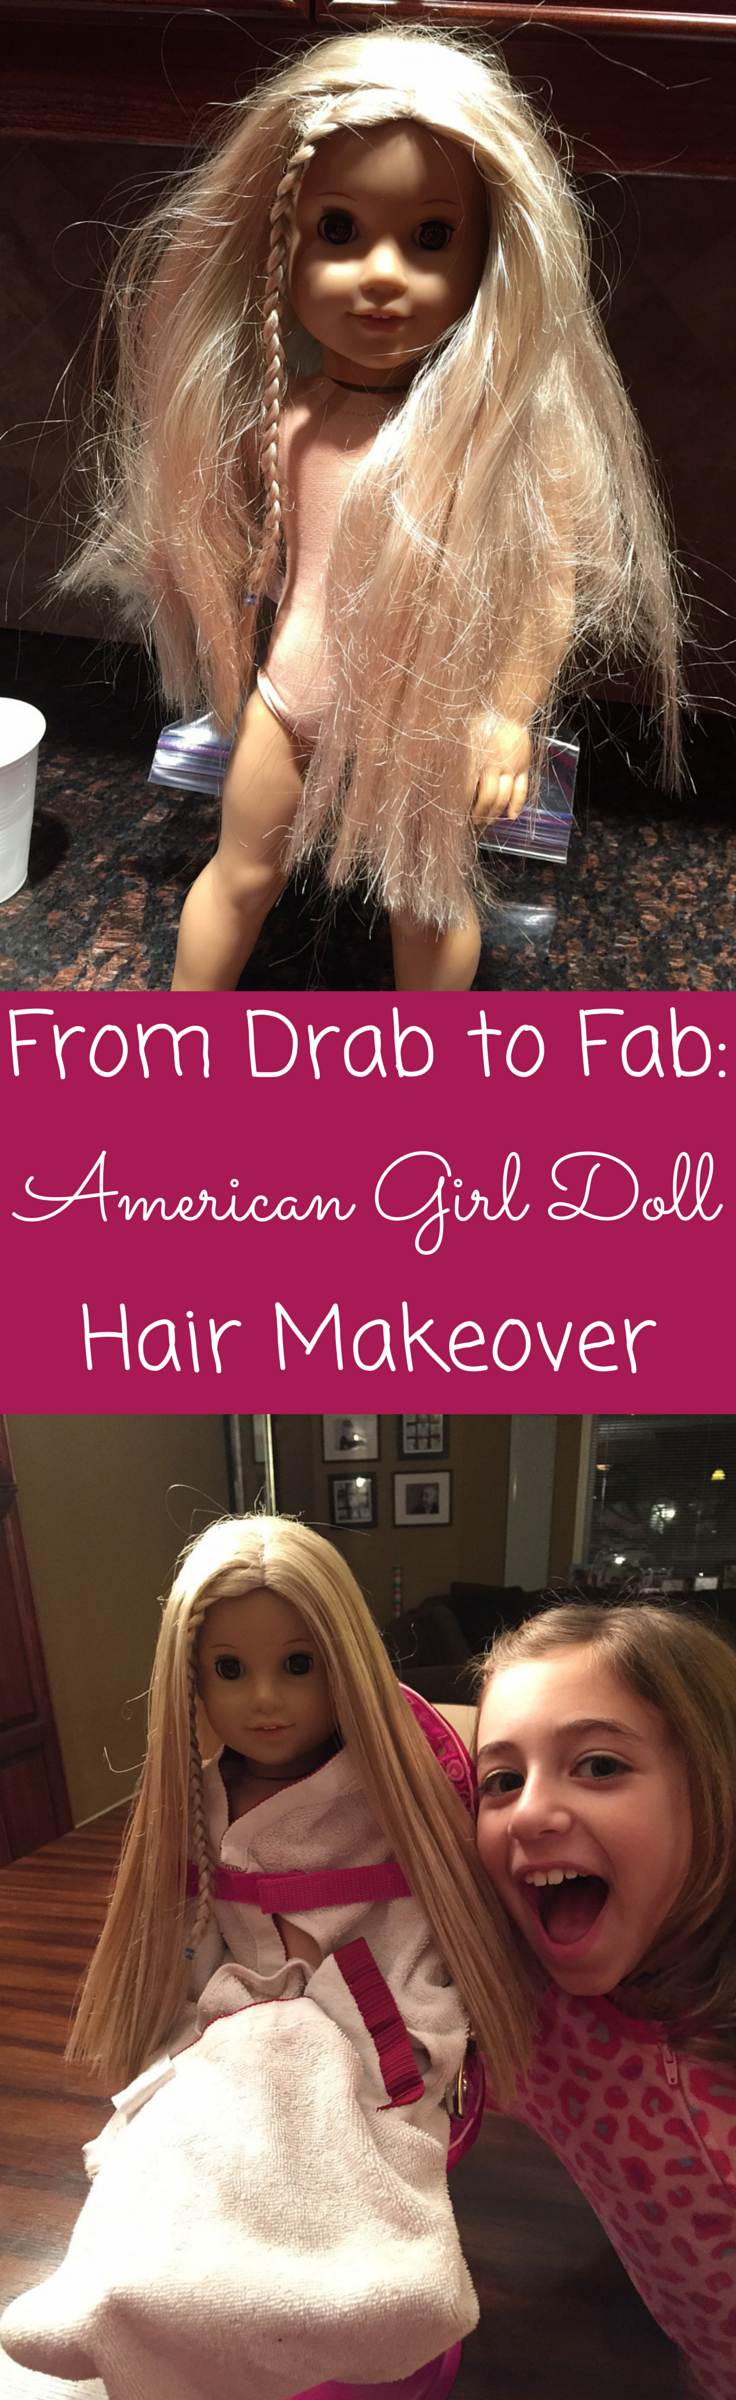 From Drab to Fab: An American Girl Doll Hair Makeover #dollcare